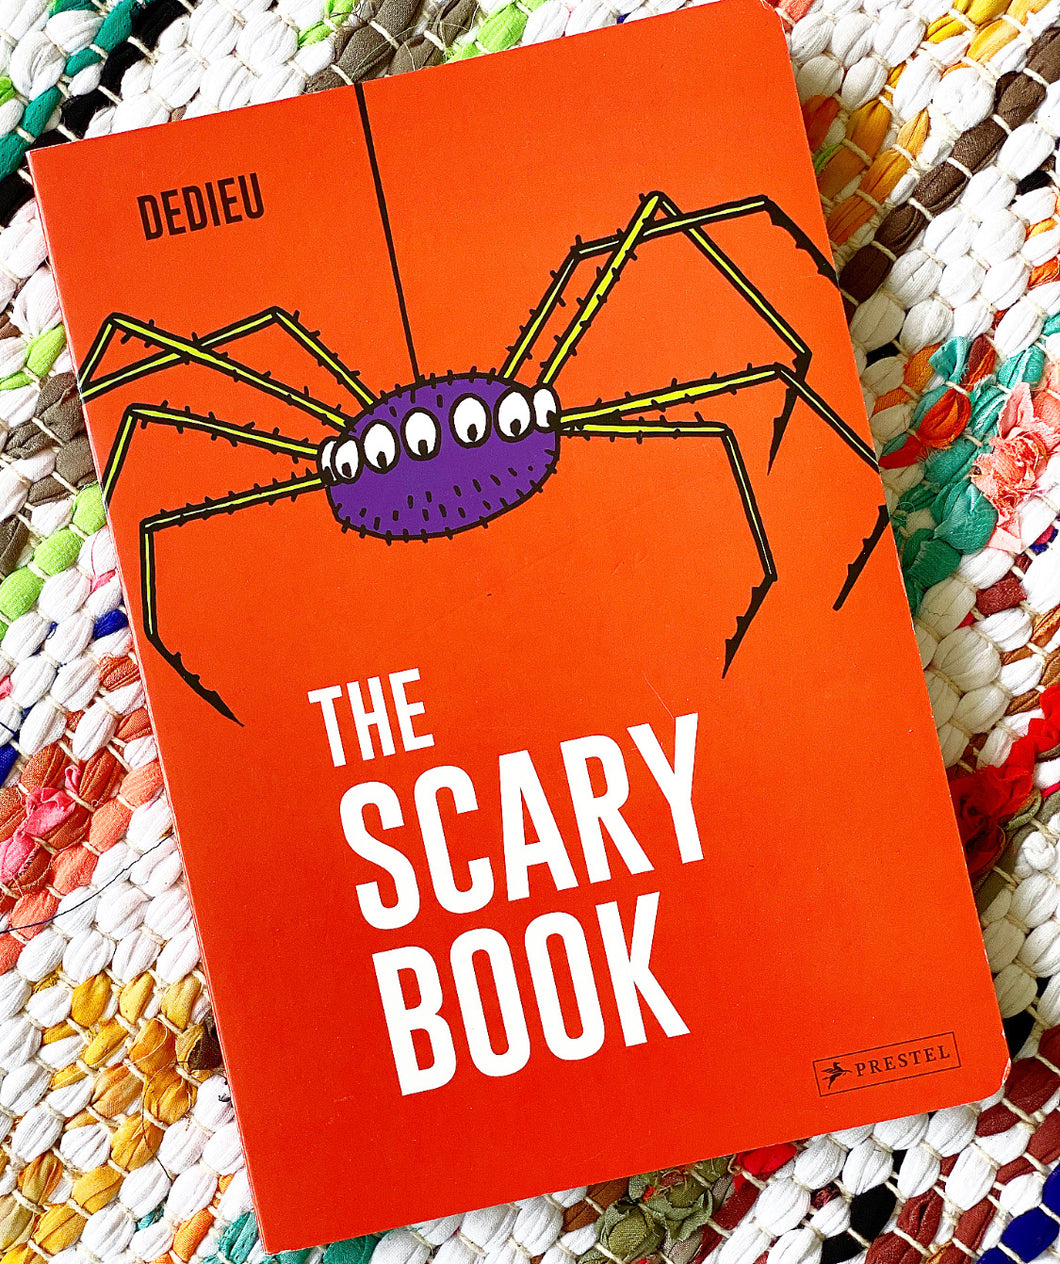 The Scary Book  | Thierry Dedieu